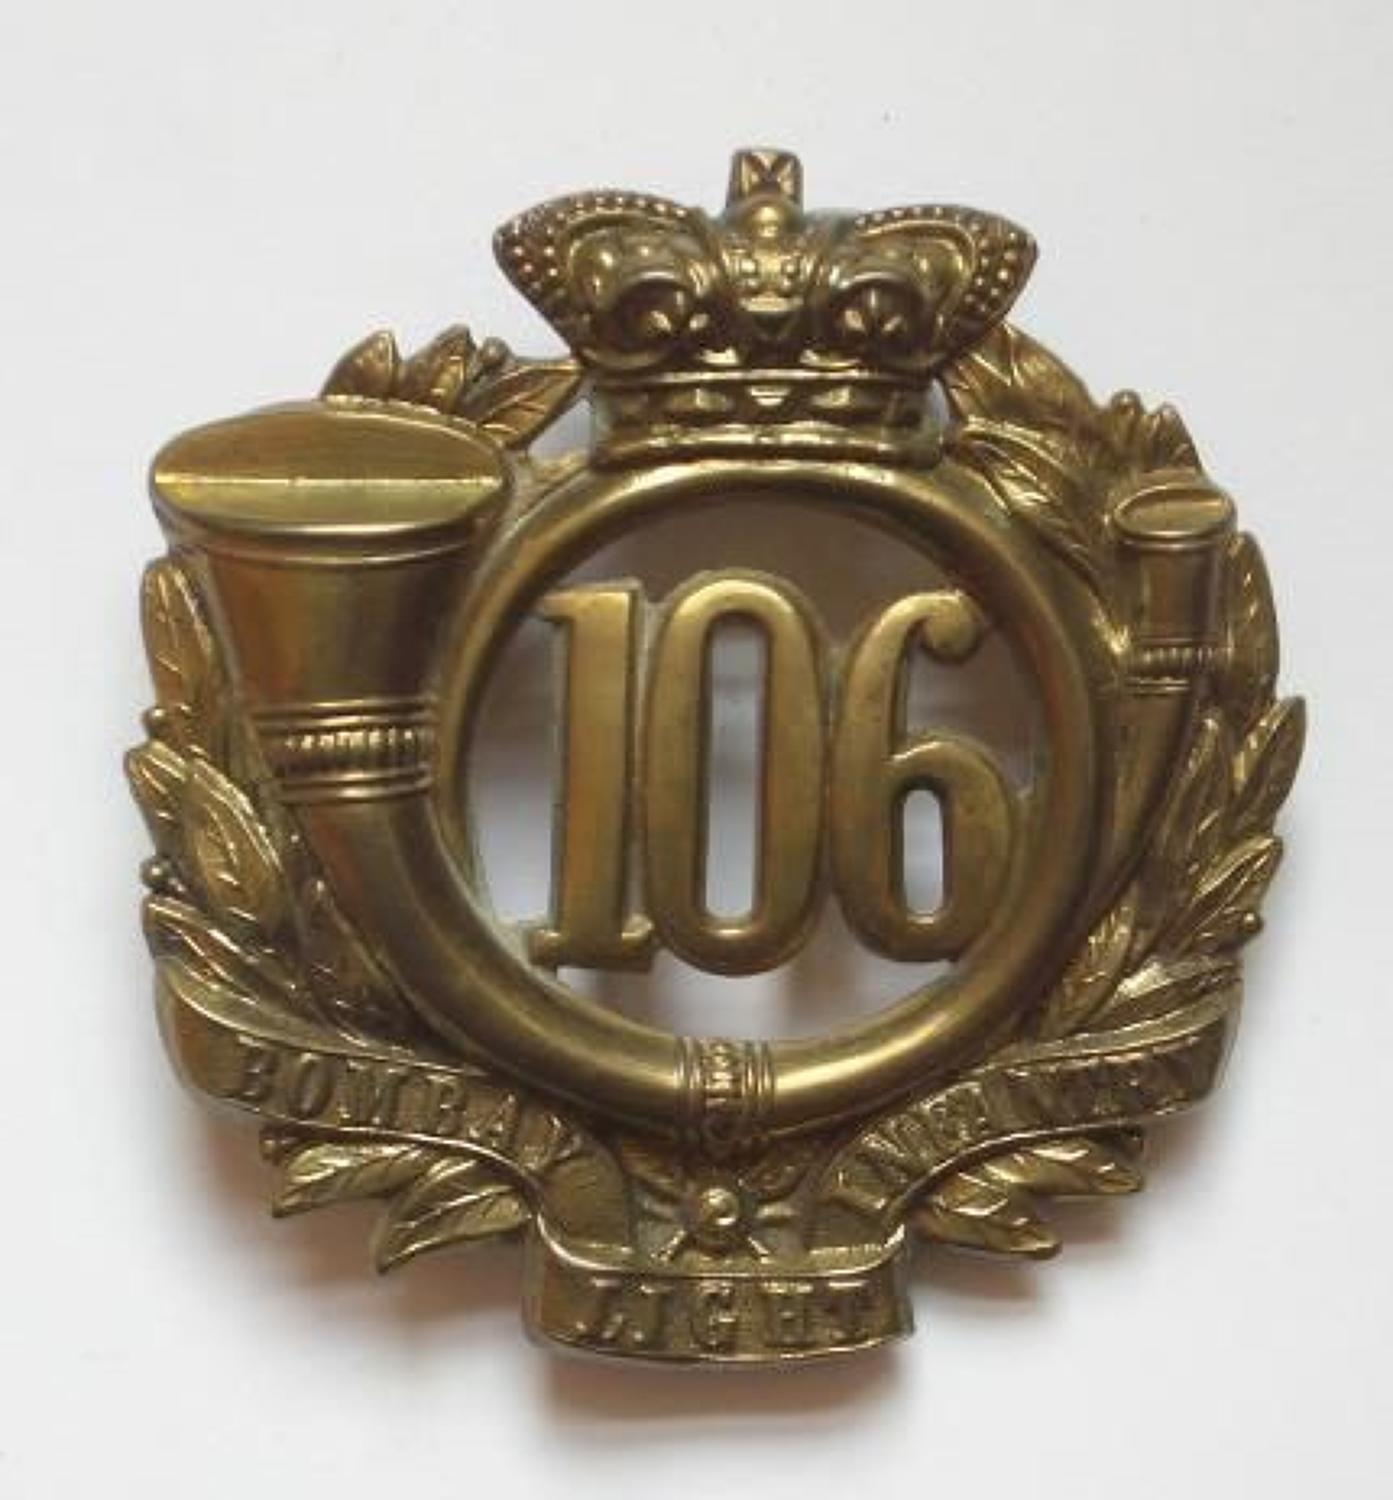 106th (Bombay Light Infantry) Regiment Victorian glengarry badge